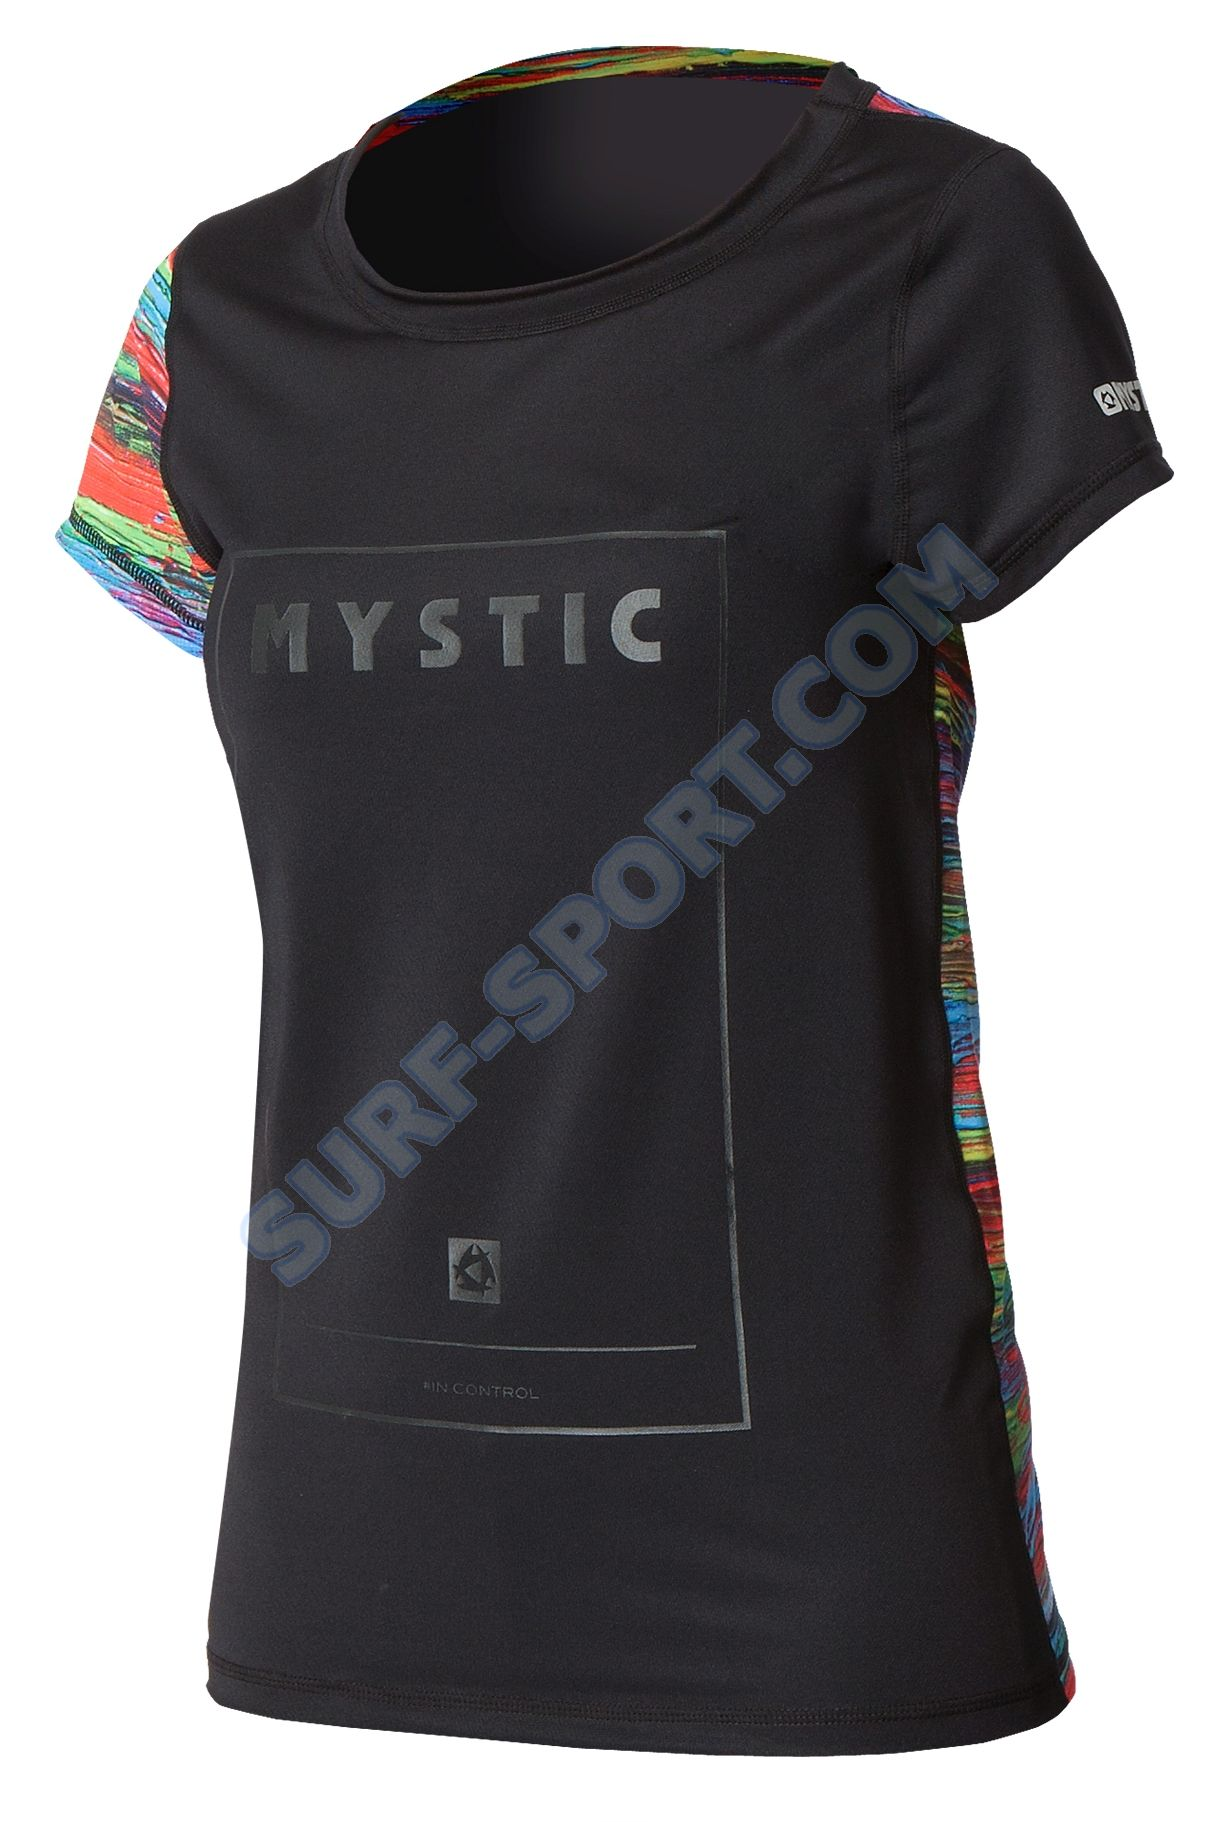 Mystic-Quickdry-Dazzled-Quickdry-ss-2016-front.jpg